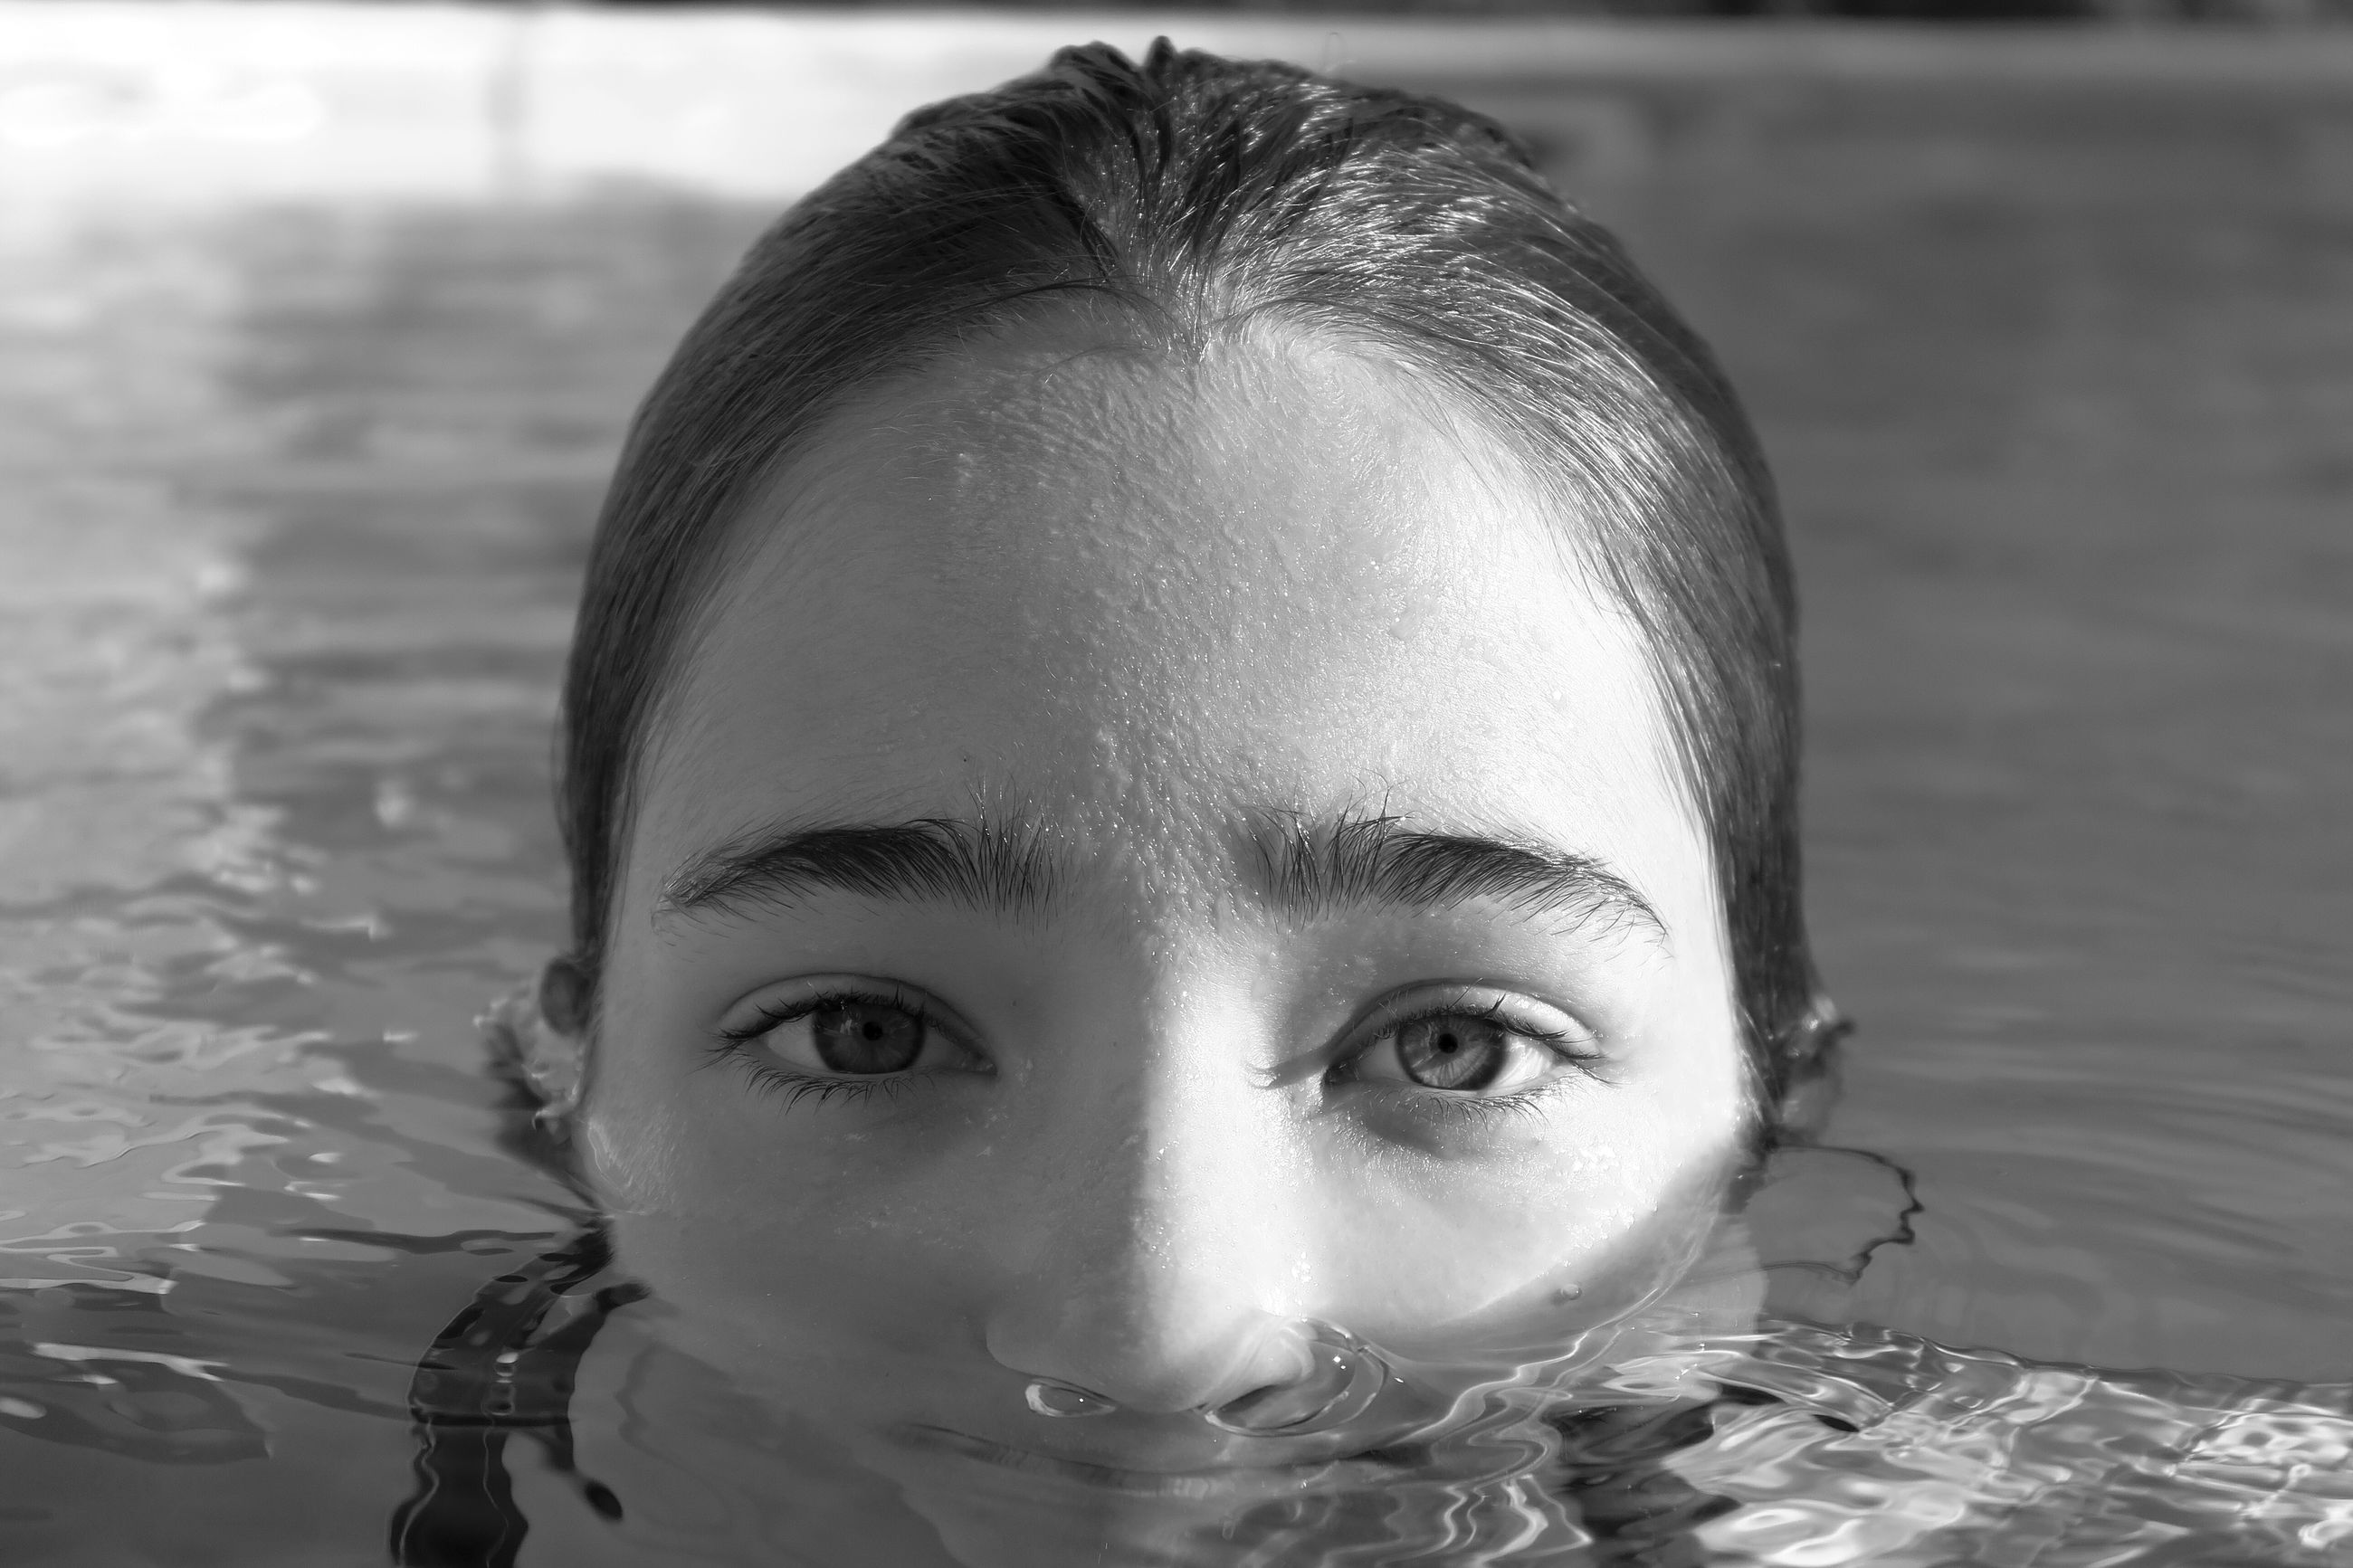 water, portrait, looking at camera, childhood, front view, one person, headshot, swimming pool, close-up, human face, real people, outdoors, swimming, day, young adult, people